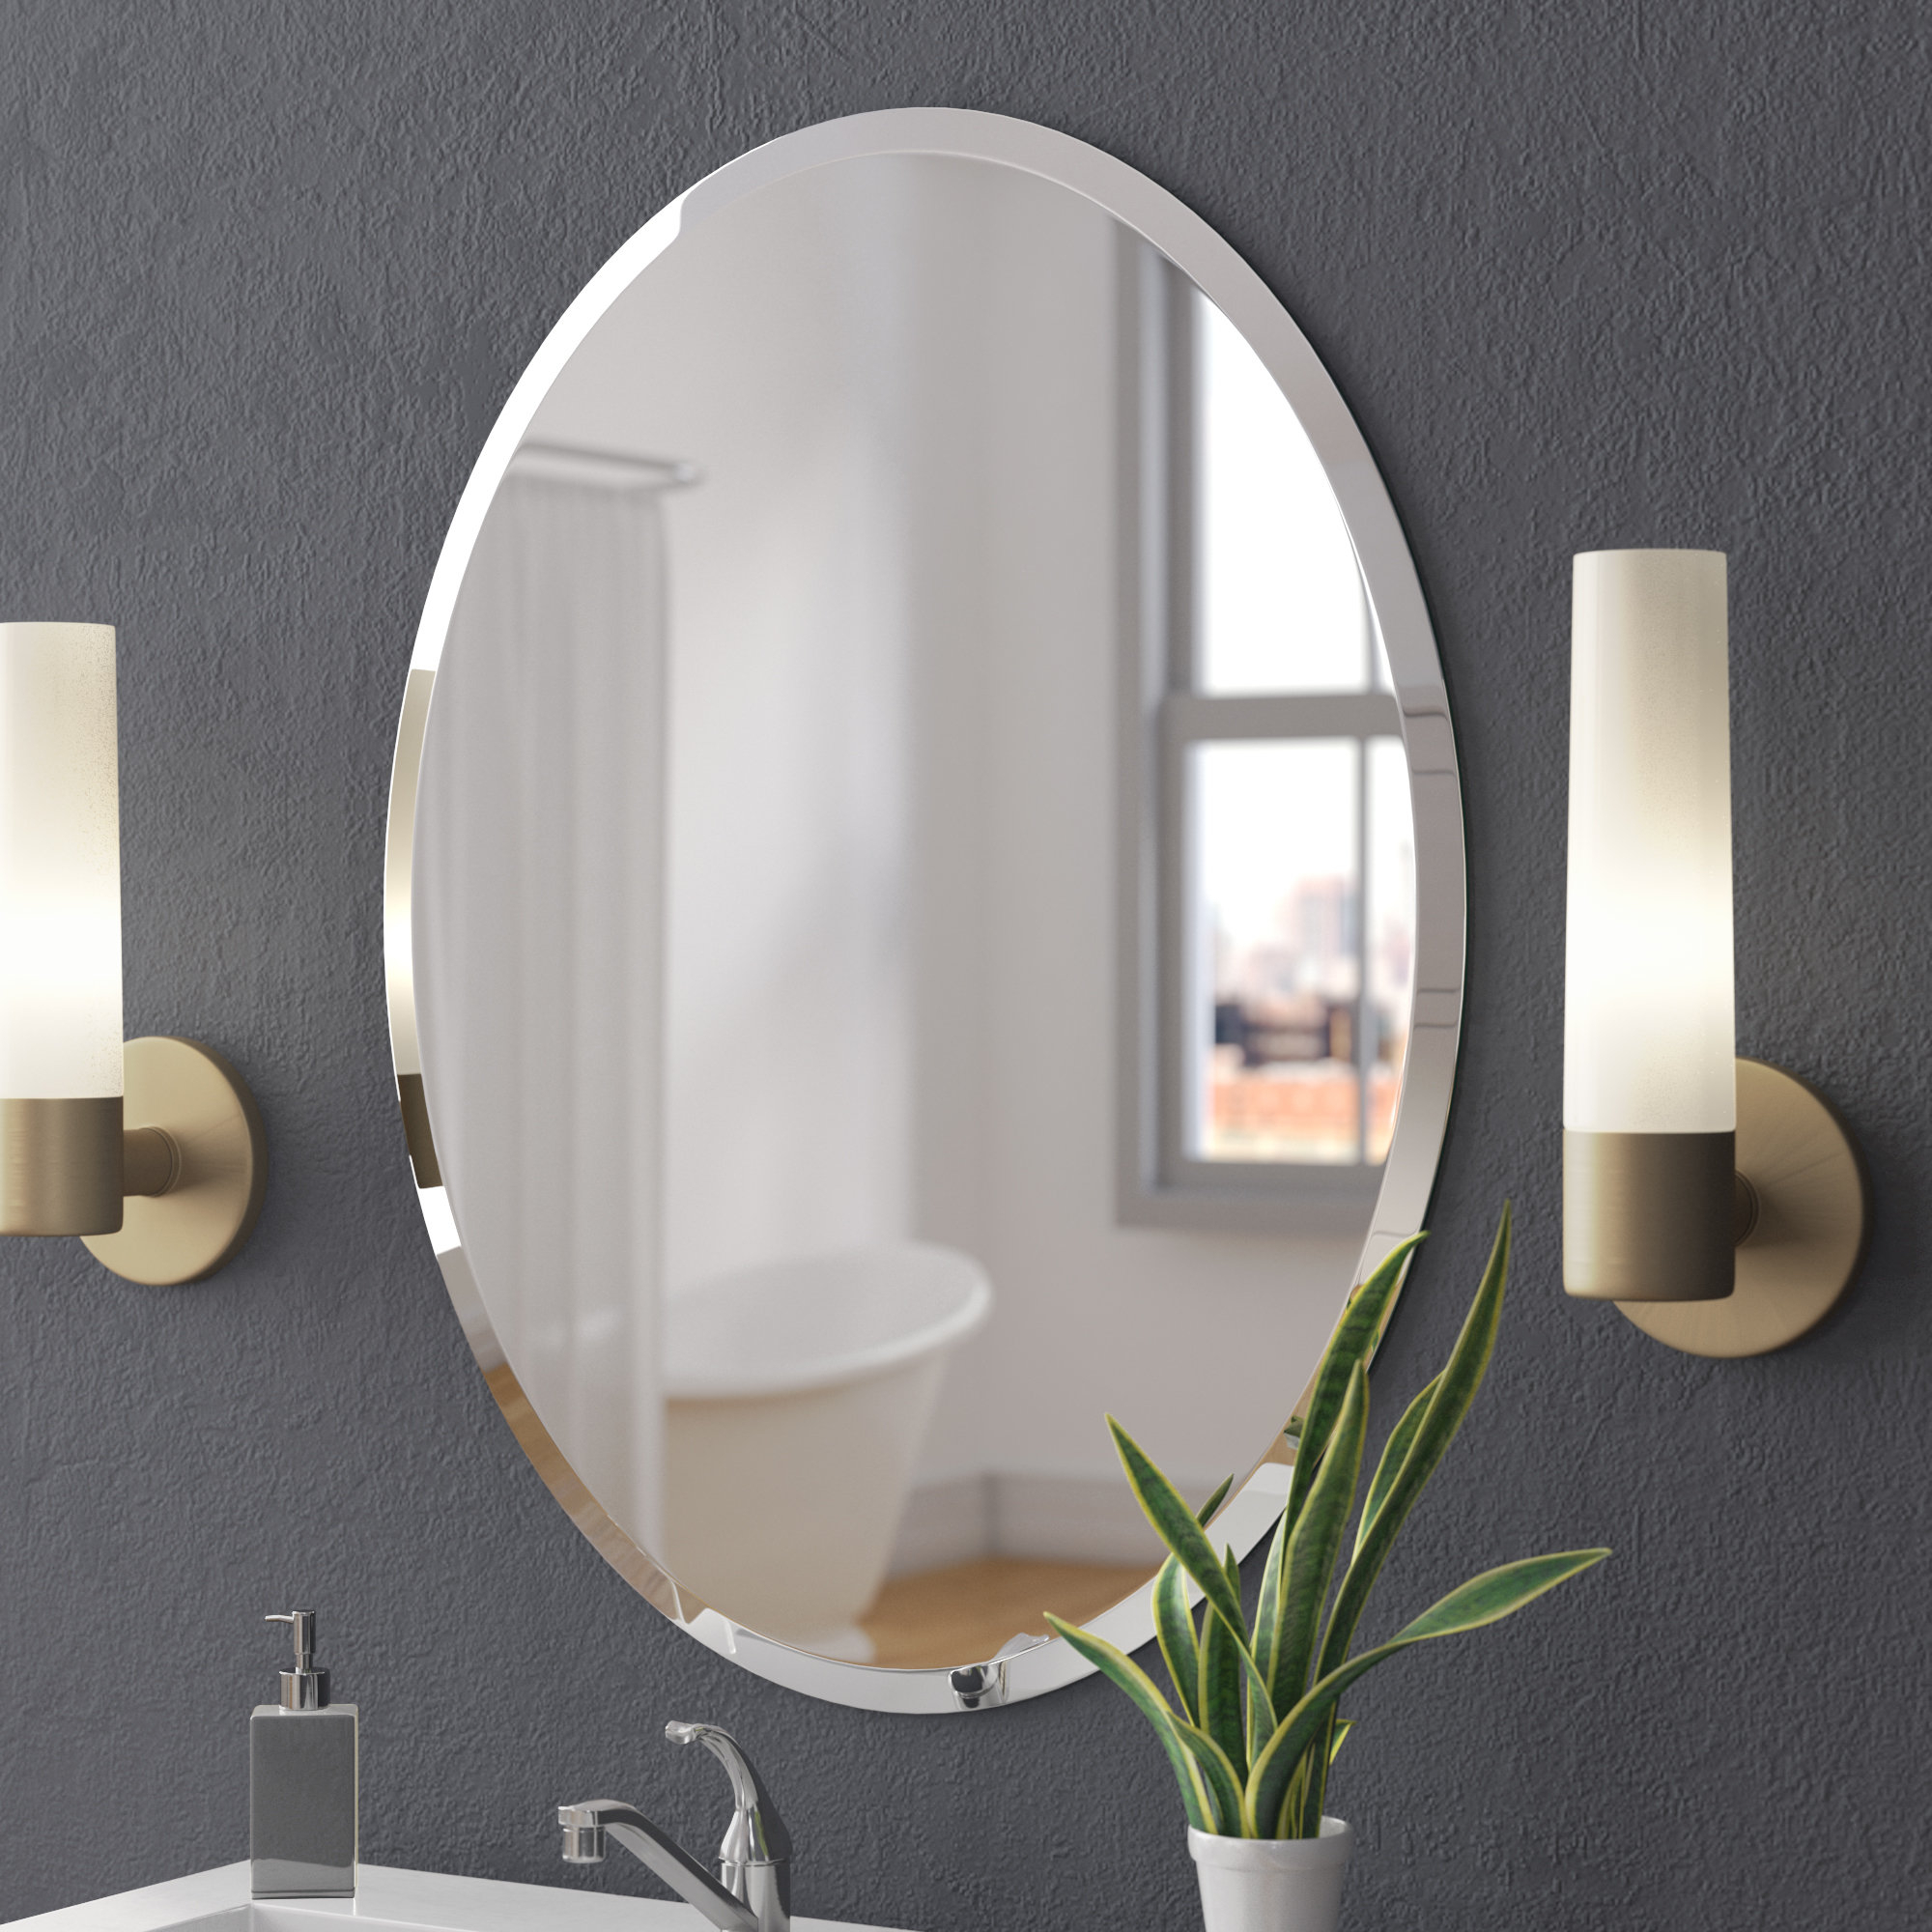 Frameless Bathroom Wall Mirrors Pertaining To Most Current Callison Oval Bevel Frameless Wall Mirror (View 8 of 20)